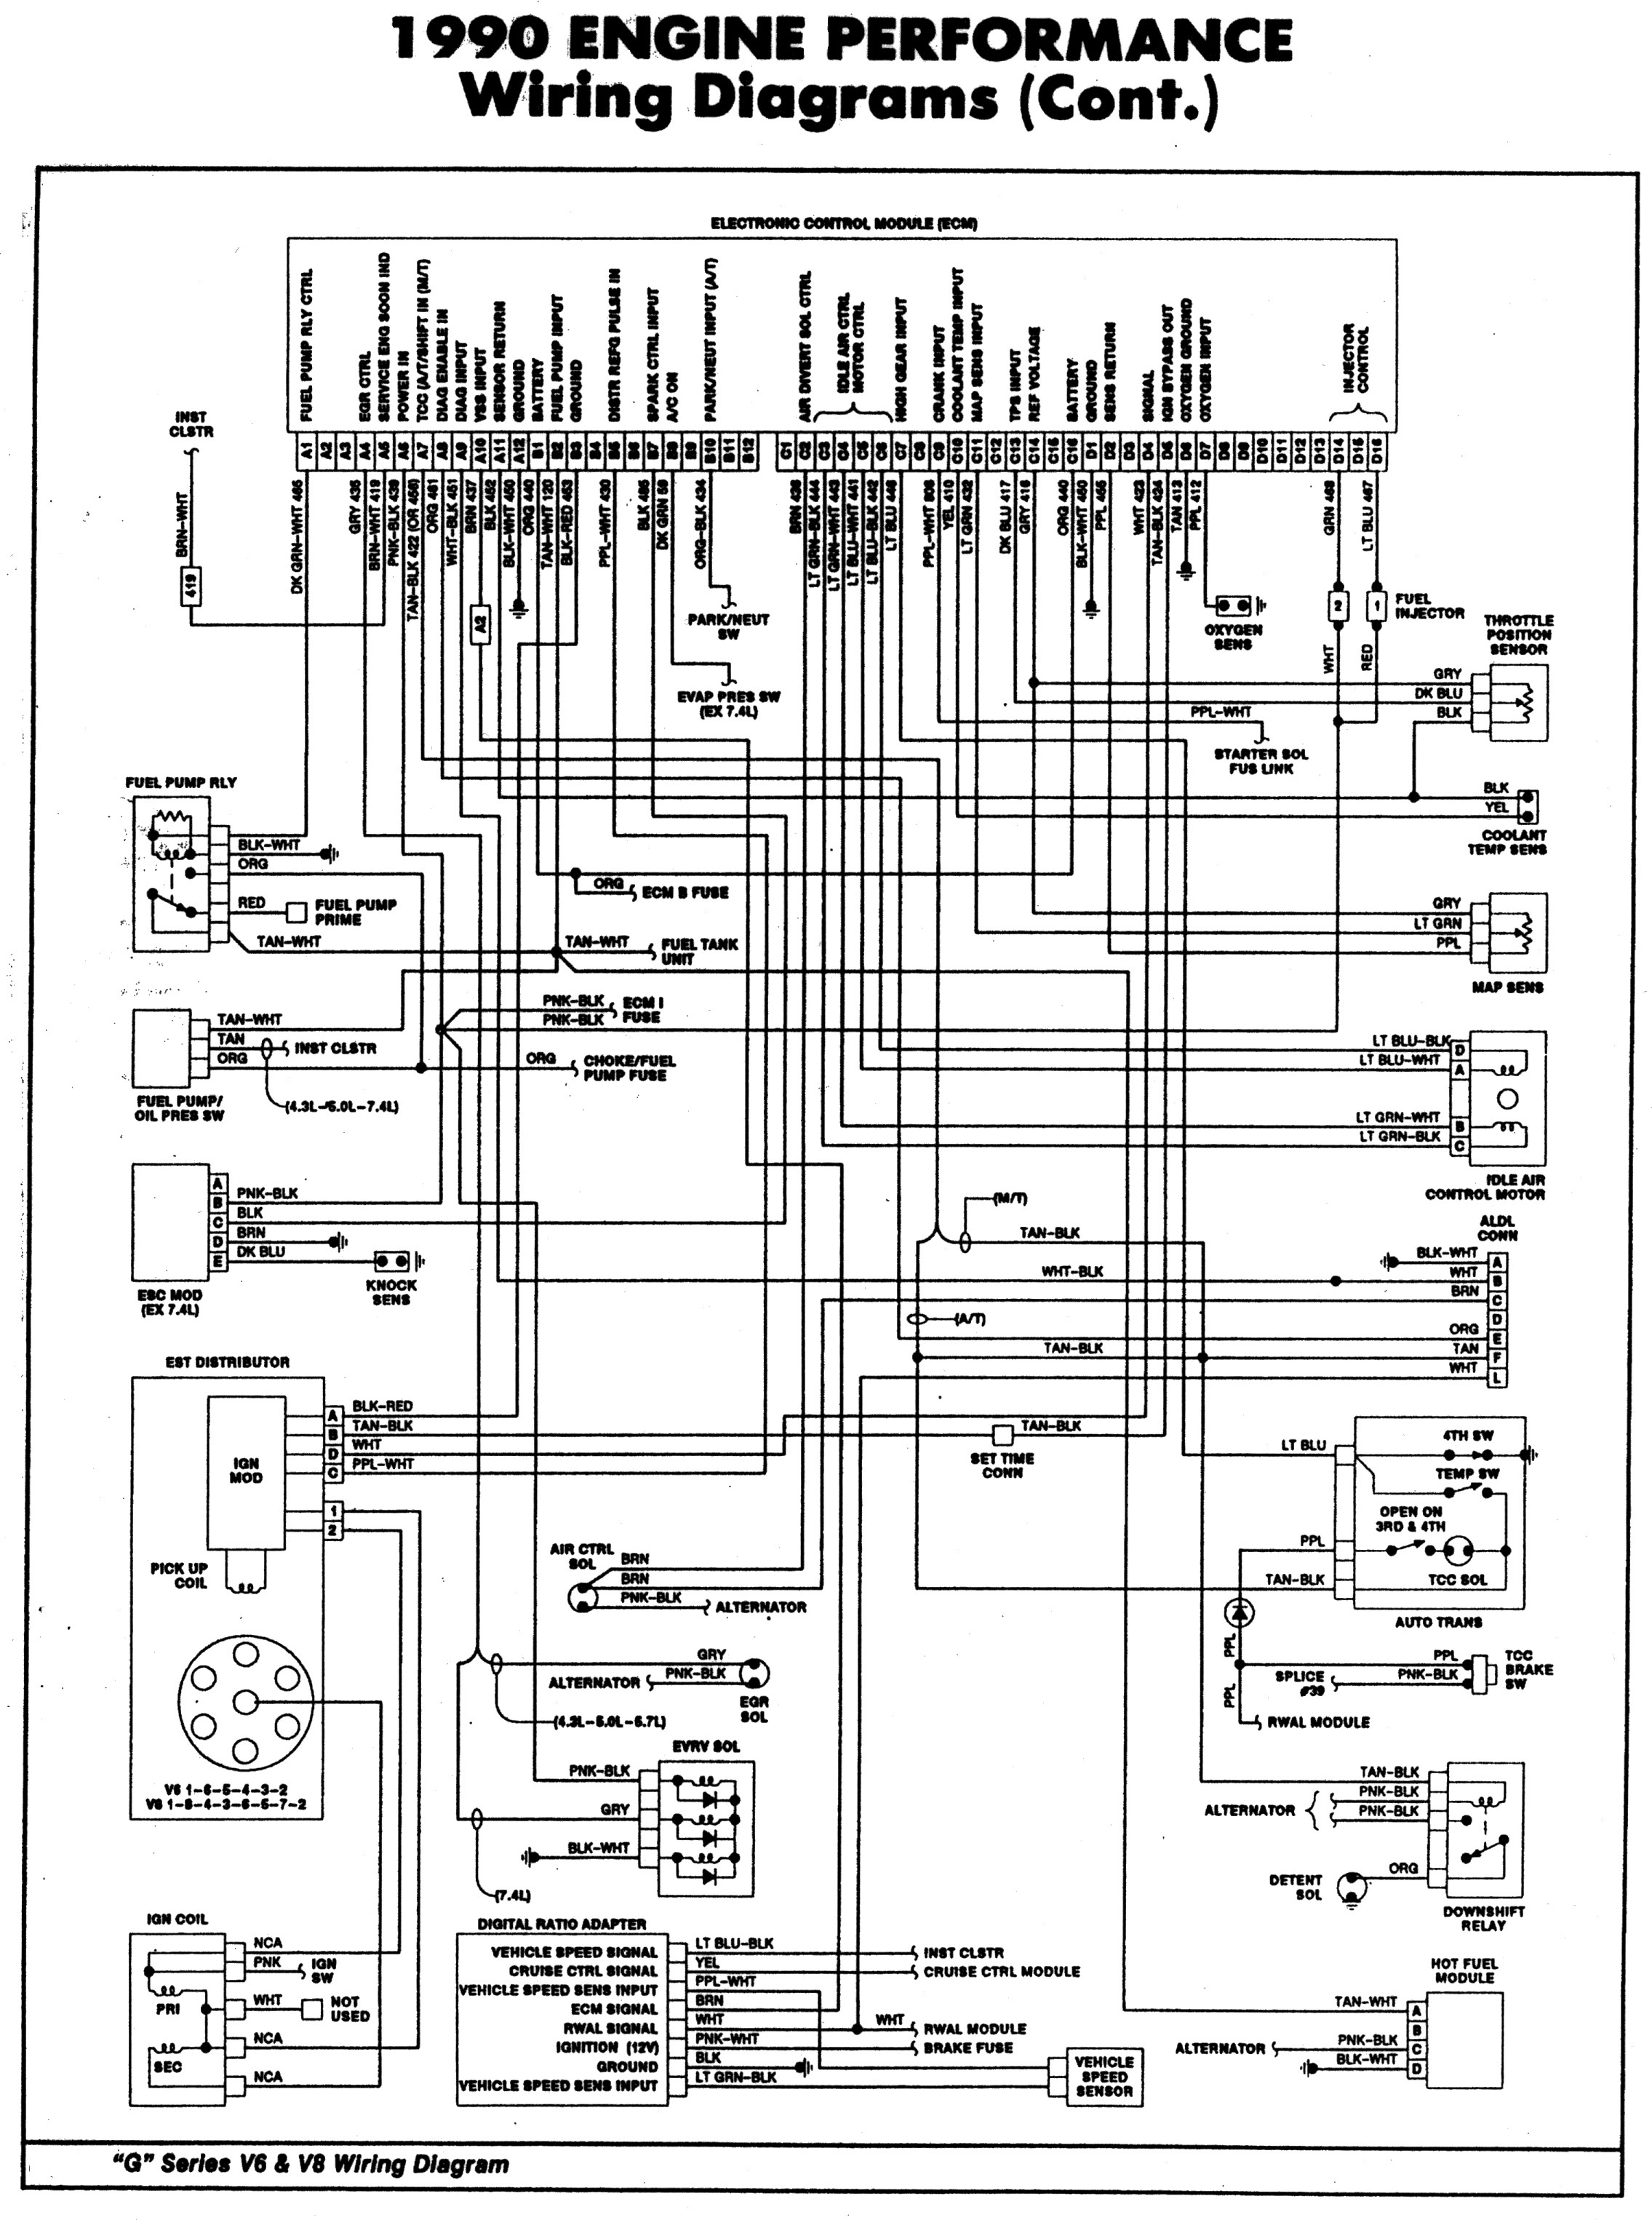 1994 chevy truck engine diagram wiring diagram query 1994 chevy truck wiring diagram image details wiring [ 2271 x 3051 Pixel ]